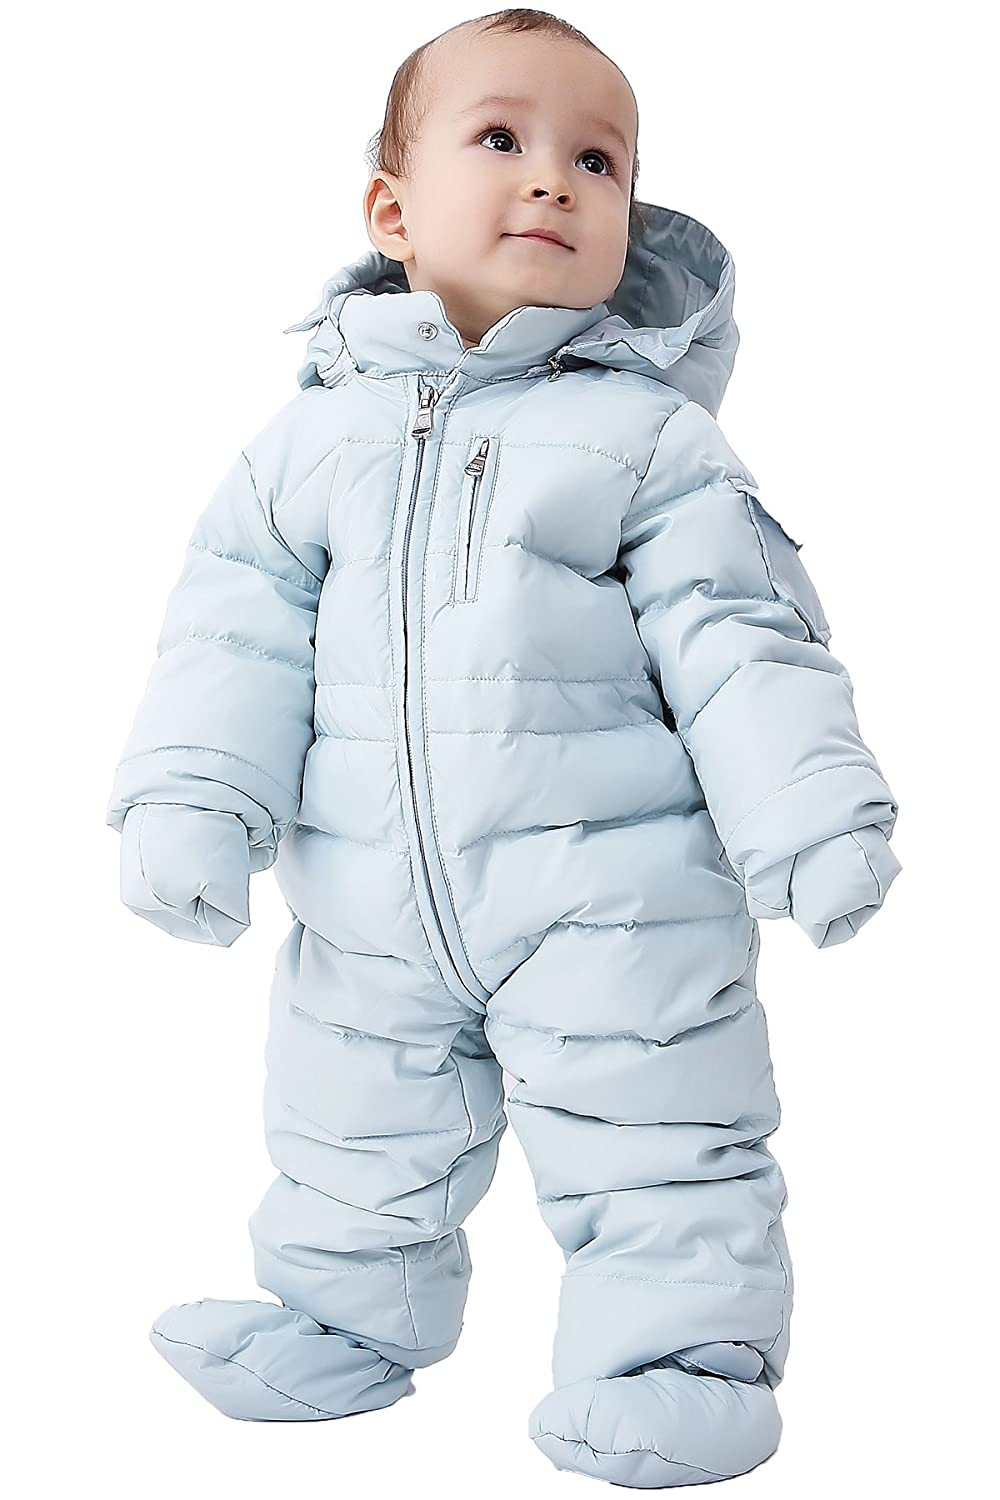 f69584035 Amazon.com  OCEANKIDS Baby Boys  Pram One-Piece Snowsuit Attached ...